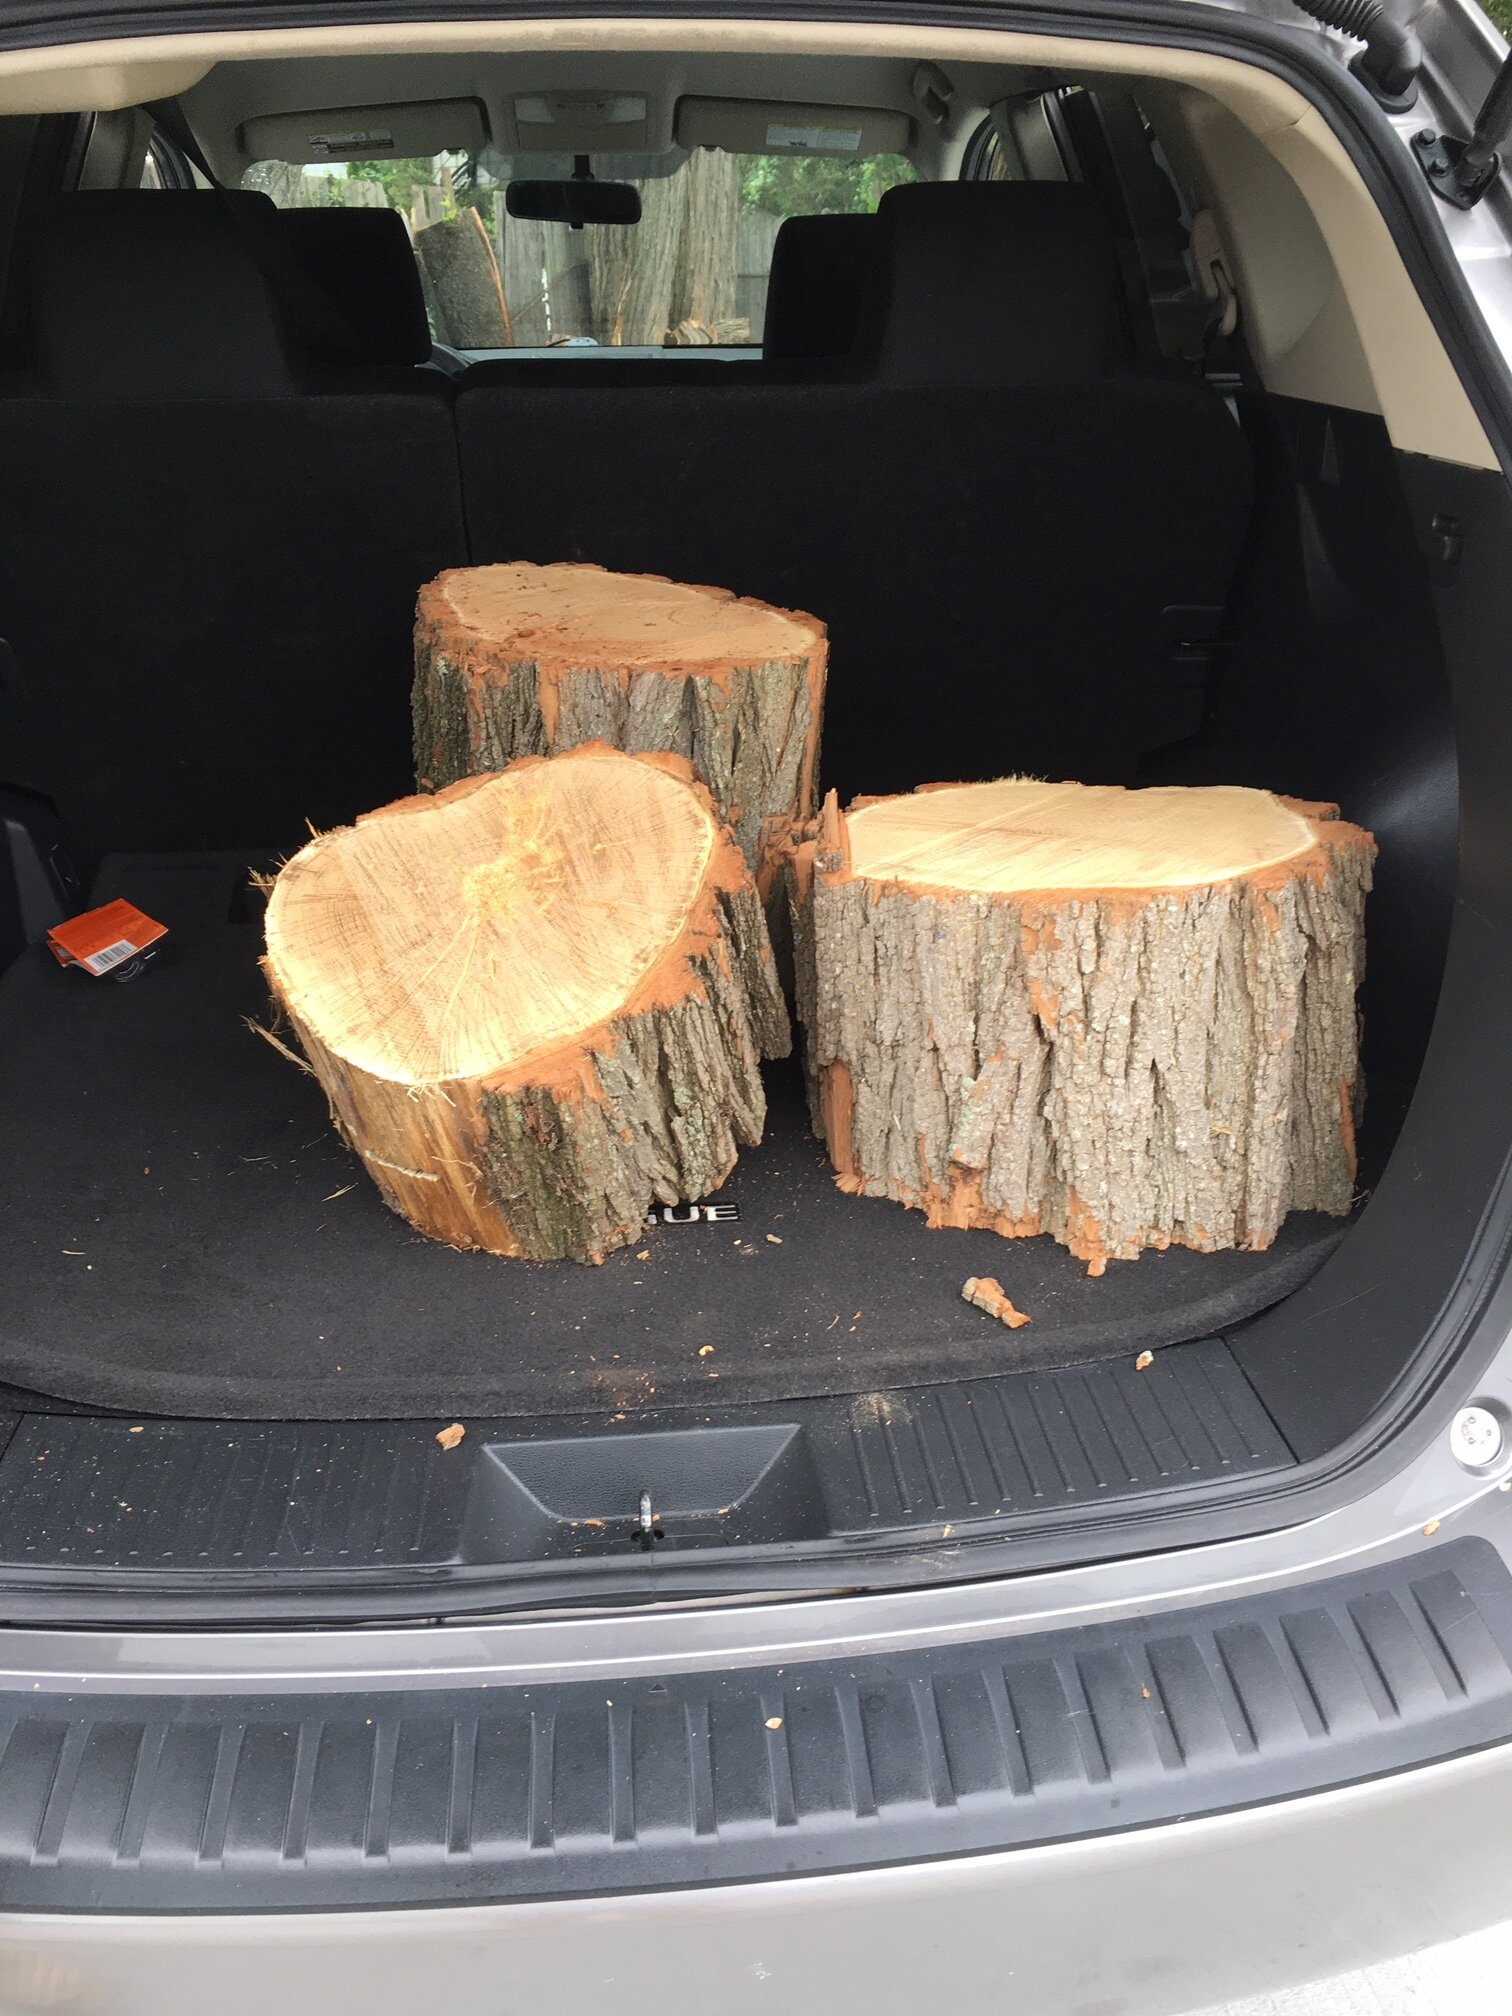 We broke in our new car with hauling some stumps home.